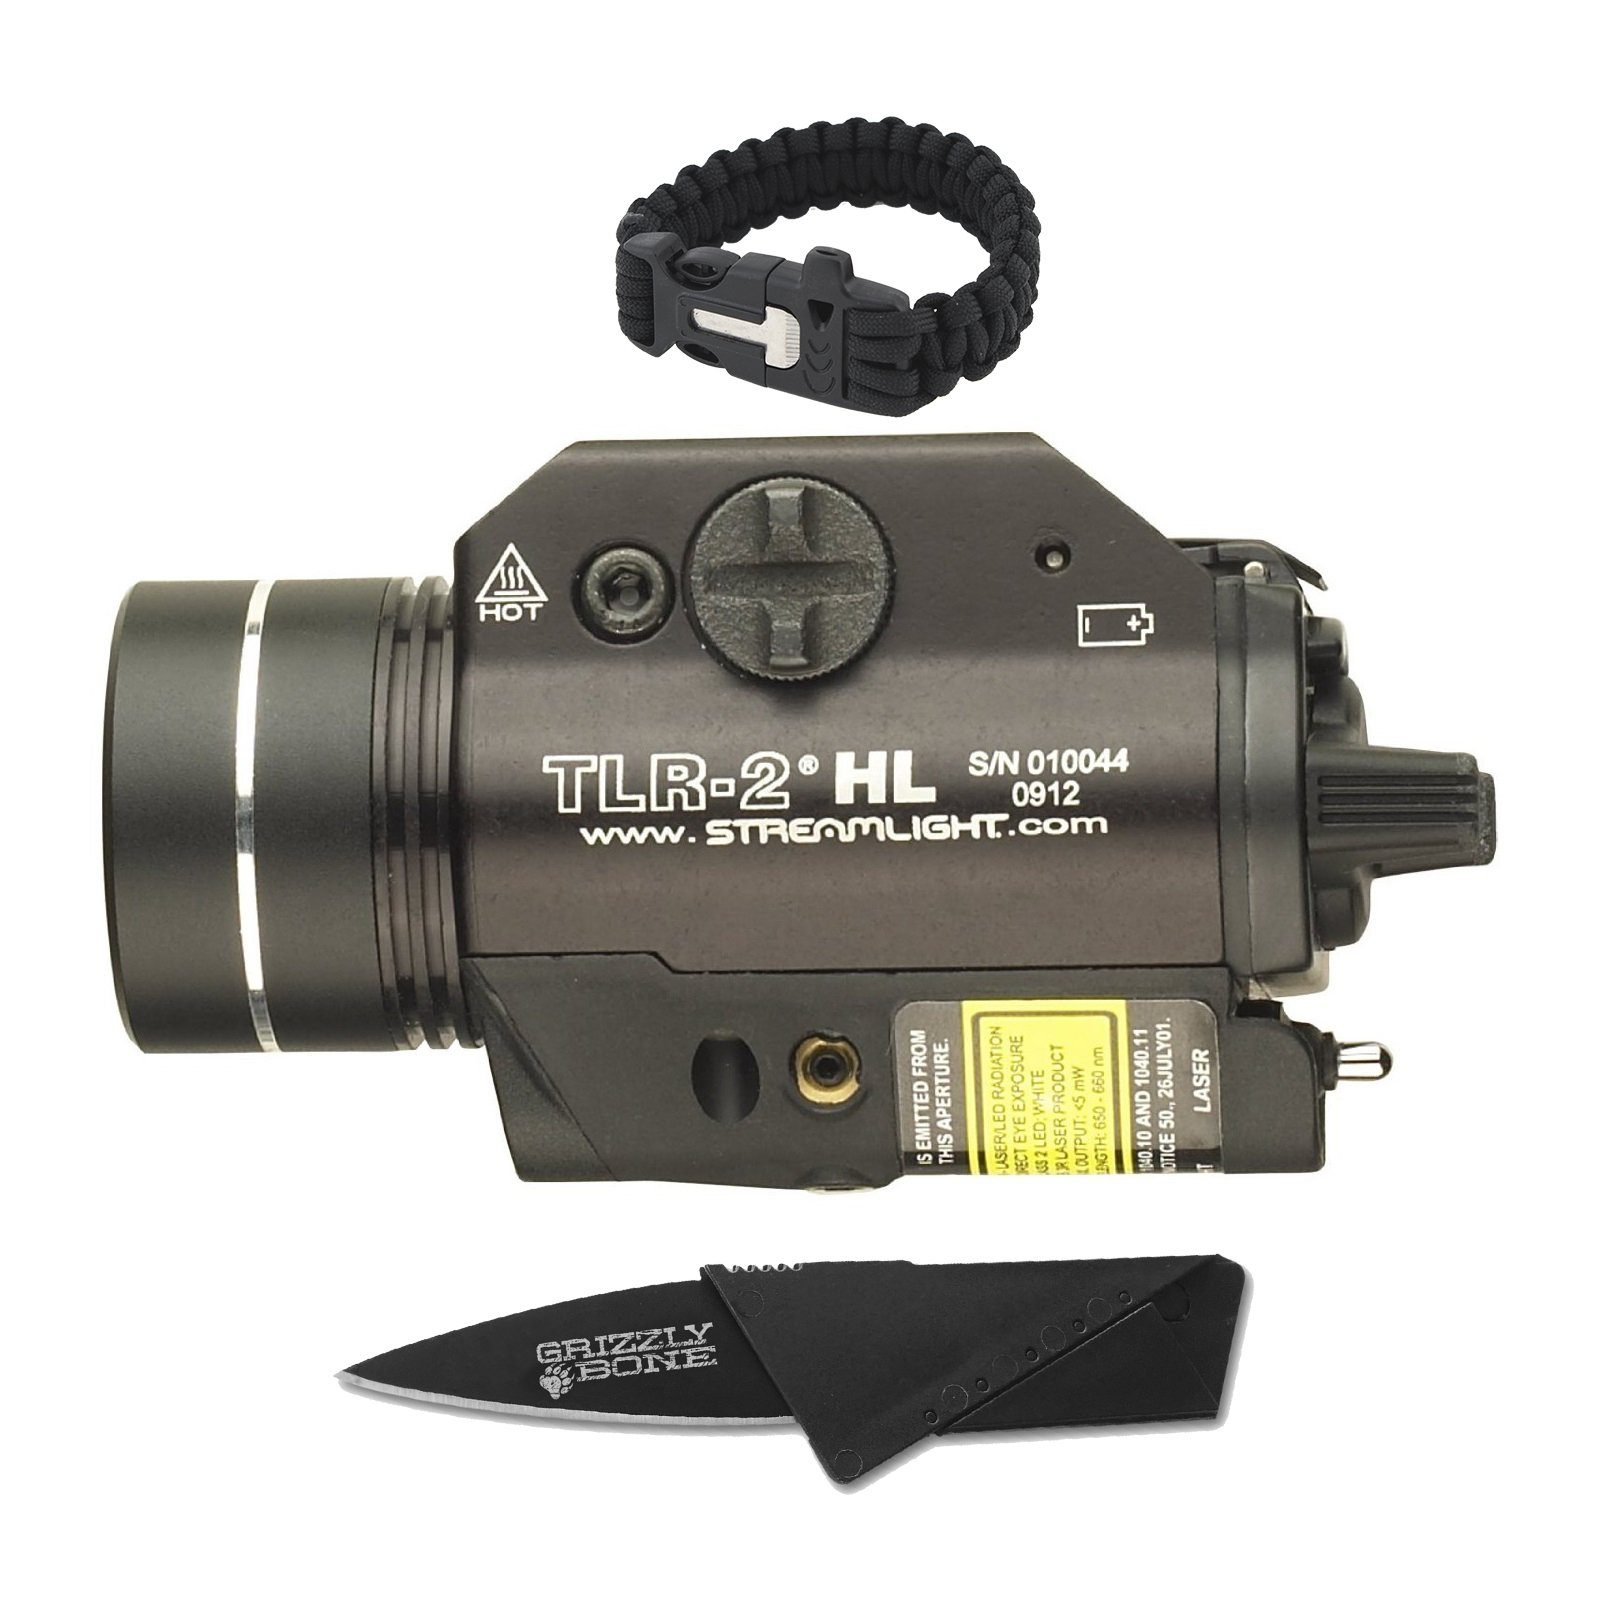 NEW Combo Pack Bright Streamlight TLR-2 HL 69261 Tactical Ultimate Flashlight For Zombie Apocalypse Camping Power Outage Survival Kit W/ Free Paracord Bracelet & Credit Card Knife Survival Life